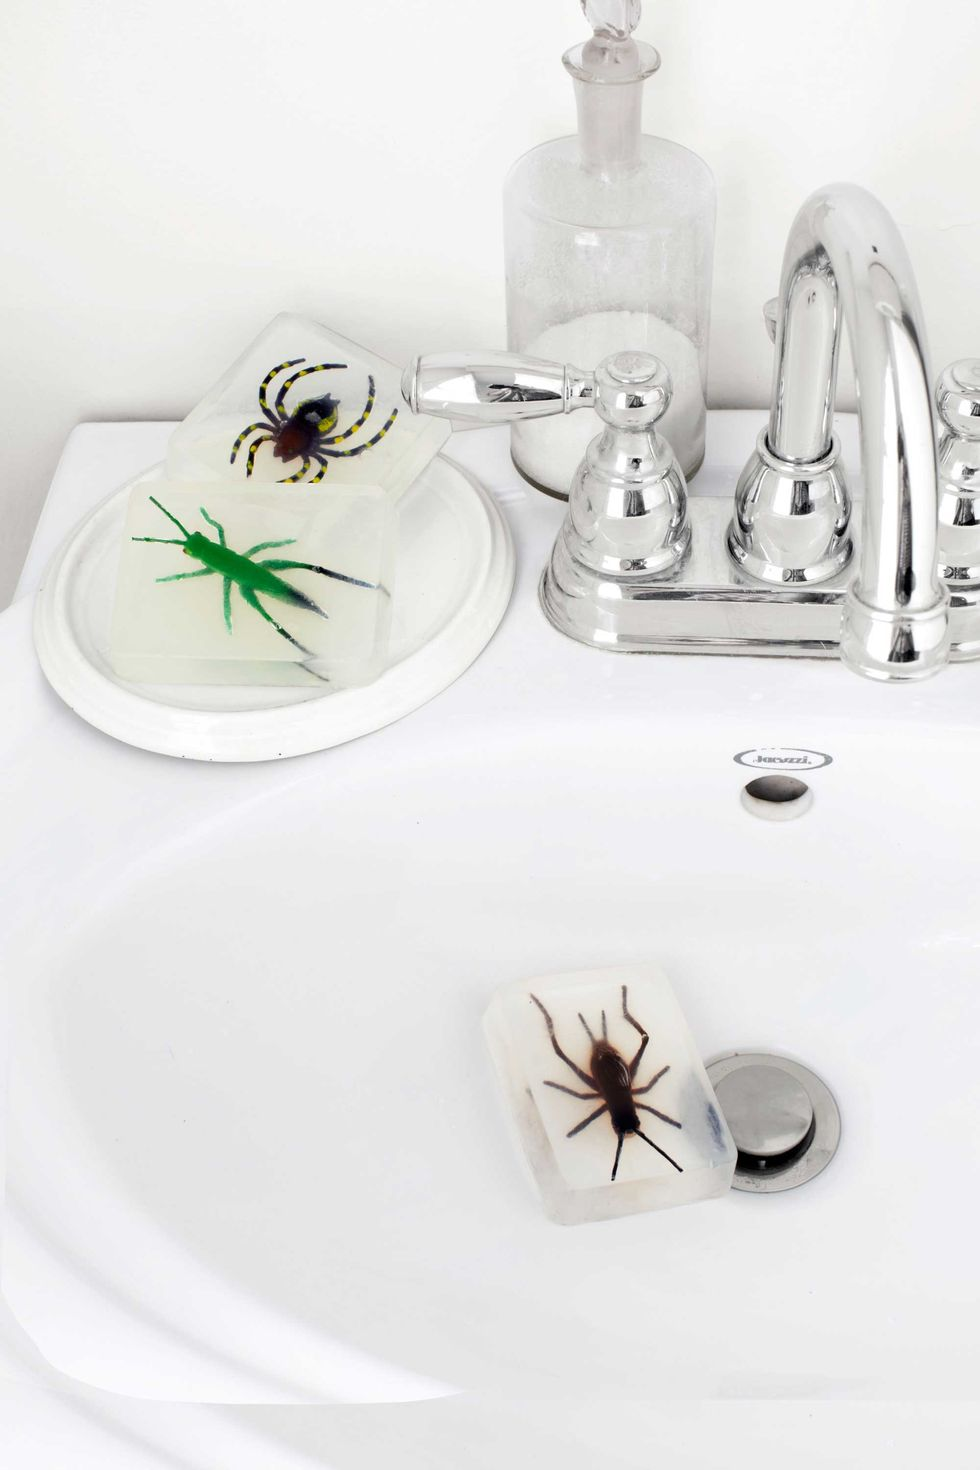 Bug soaps to scare your guests.